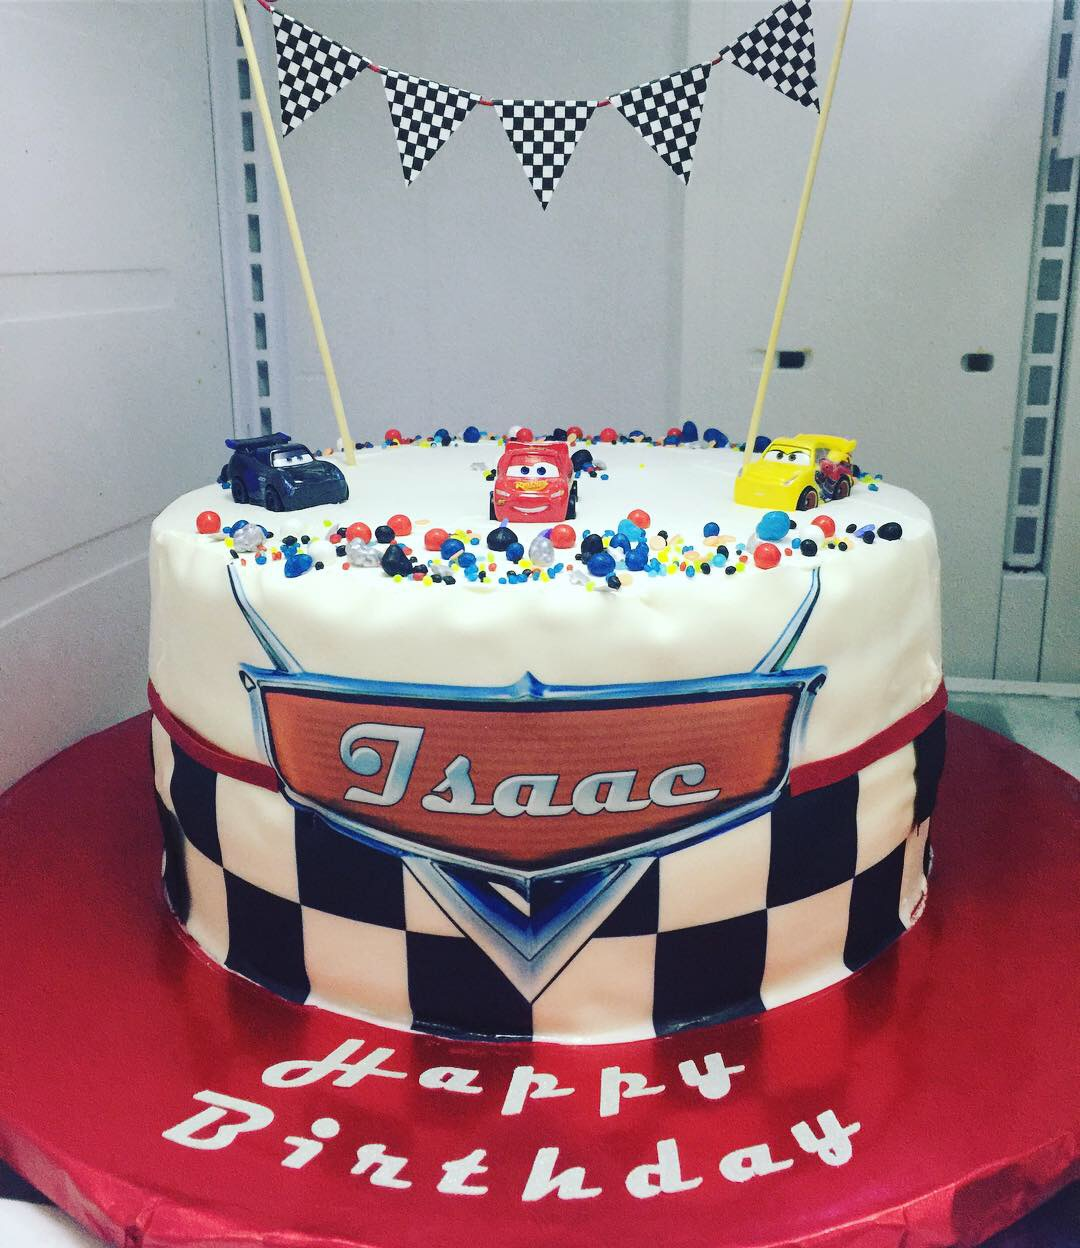 Pleasant Disney Cars Birthday Cake Sweet Tasty Bakery Funny Birthday Cards Online Alyptdamsfinfo